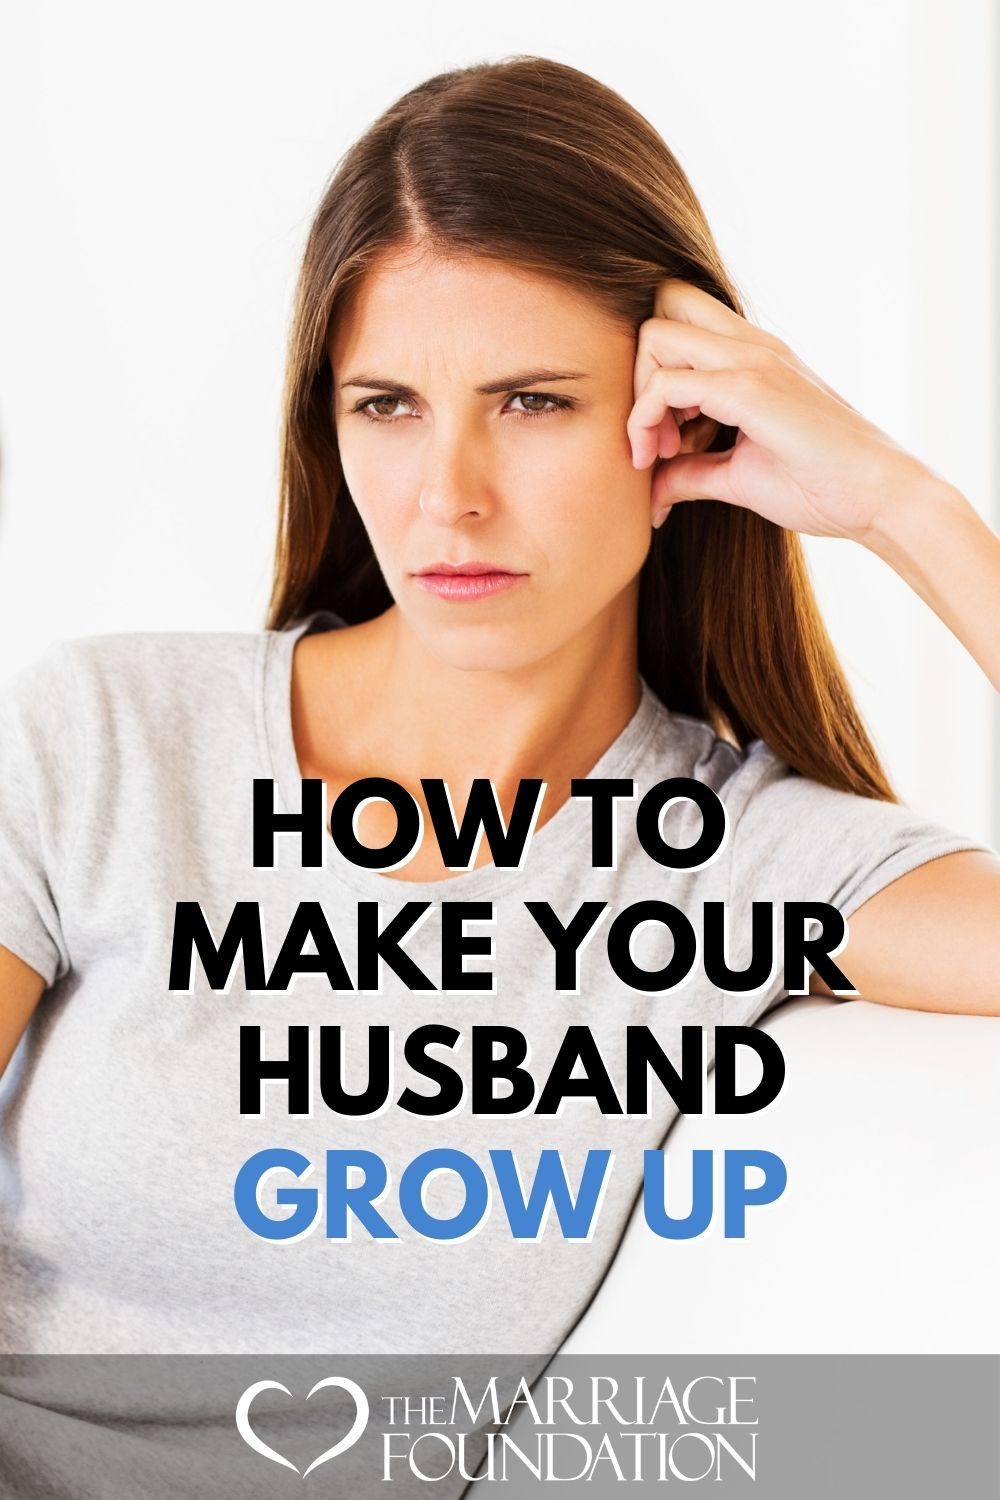 How To Make Your Husband Grow Up